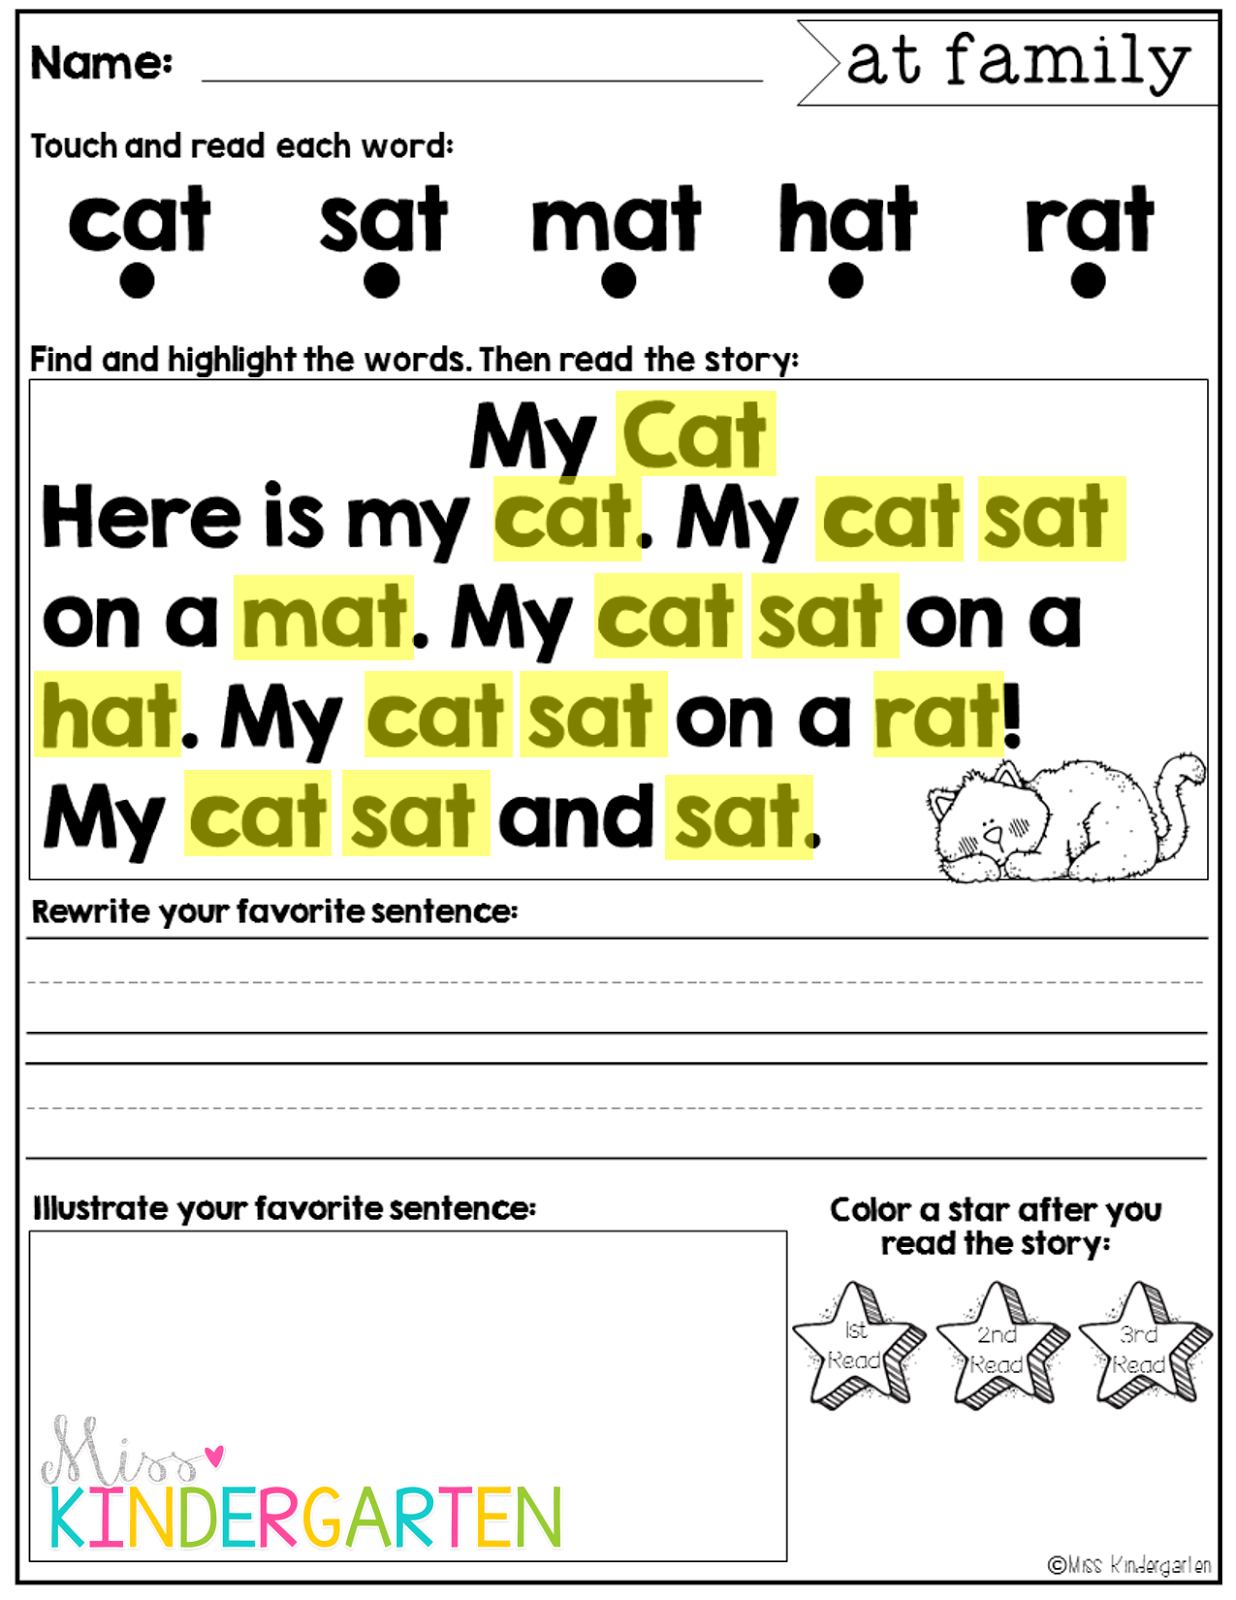 https://www.teacherspayteachers.com/Product/I-Can-Read-short-vowel-intervention-fluency-passages-1786235